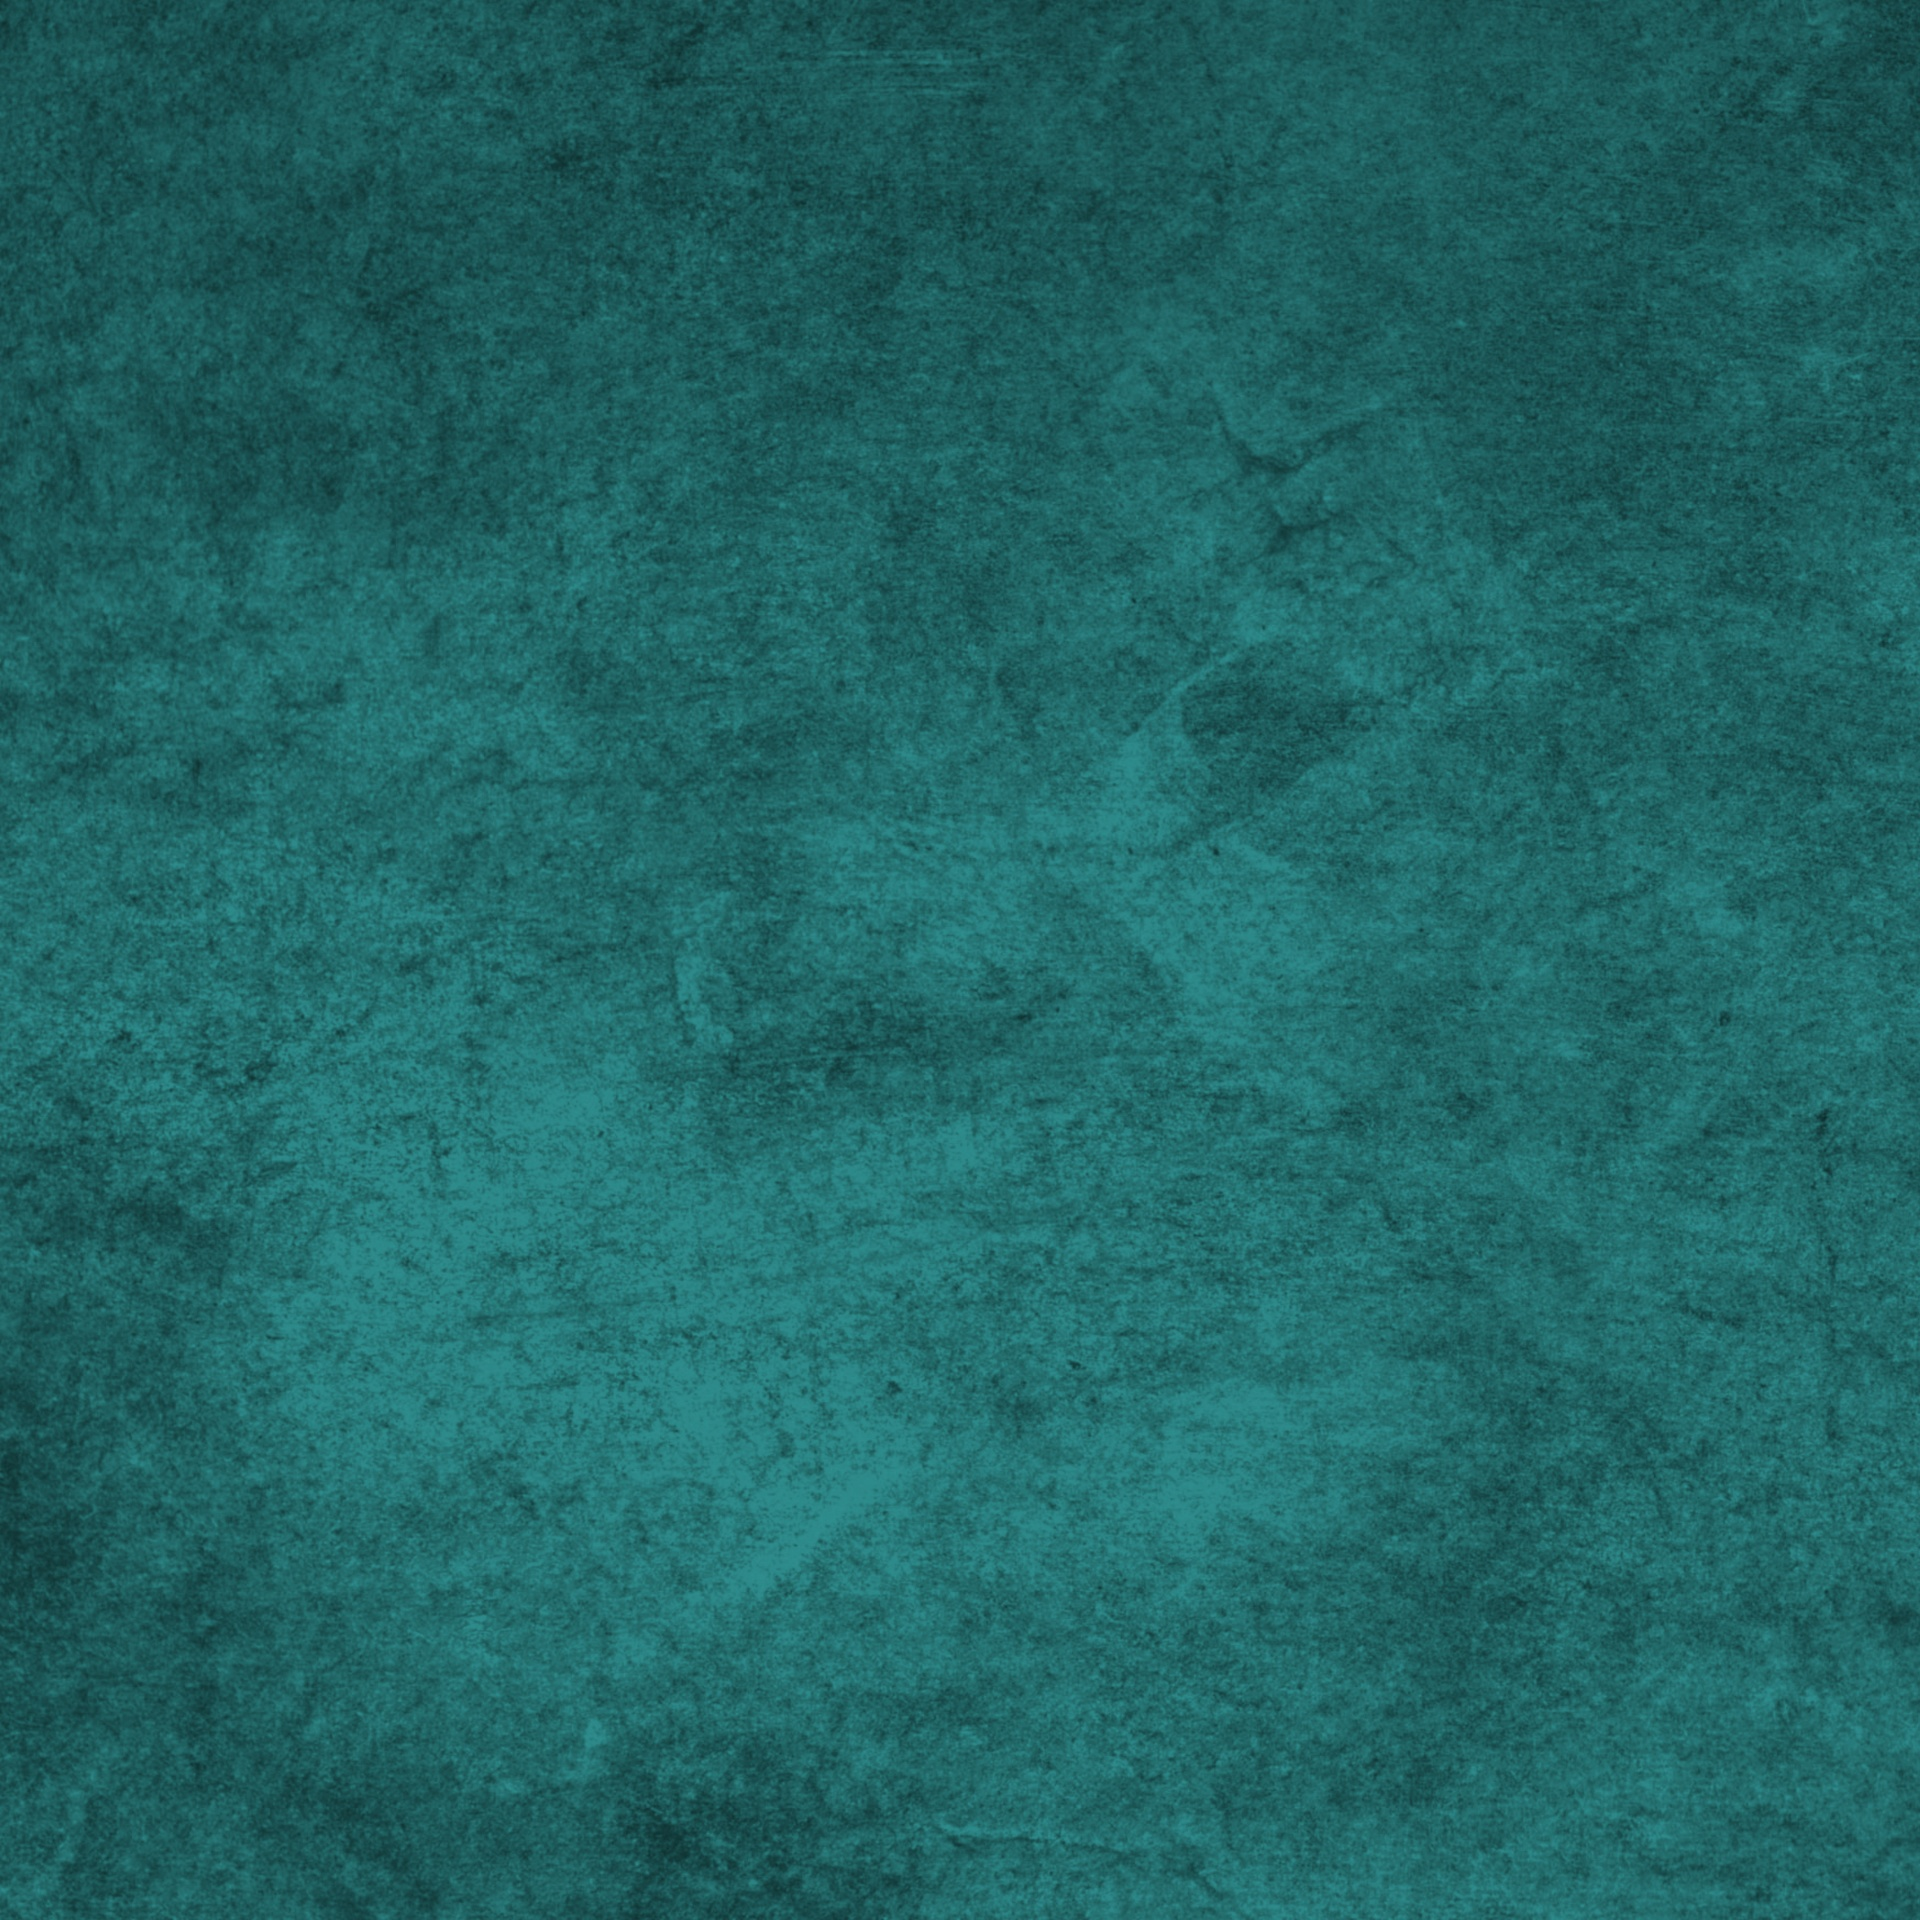 background wallpaper pattern design texture free photo from